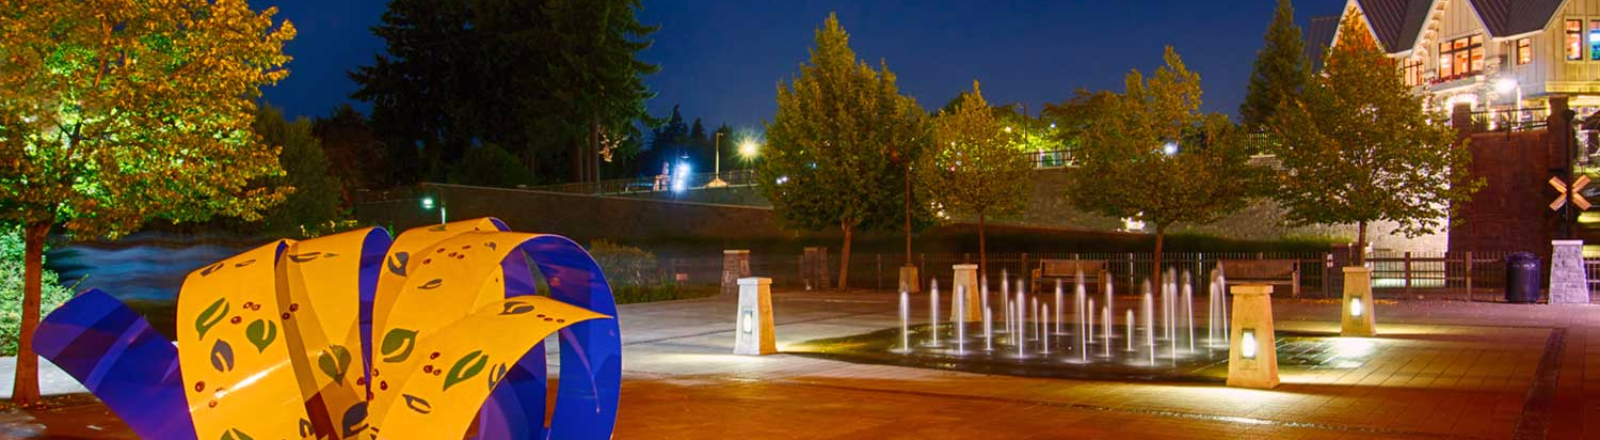 Whimsical Yellow U0026 Blue Metal Sculpture And Interactive Splash Fountain Lit  At Night On Lower Millennium. Lake Oswego